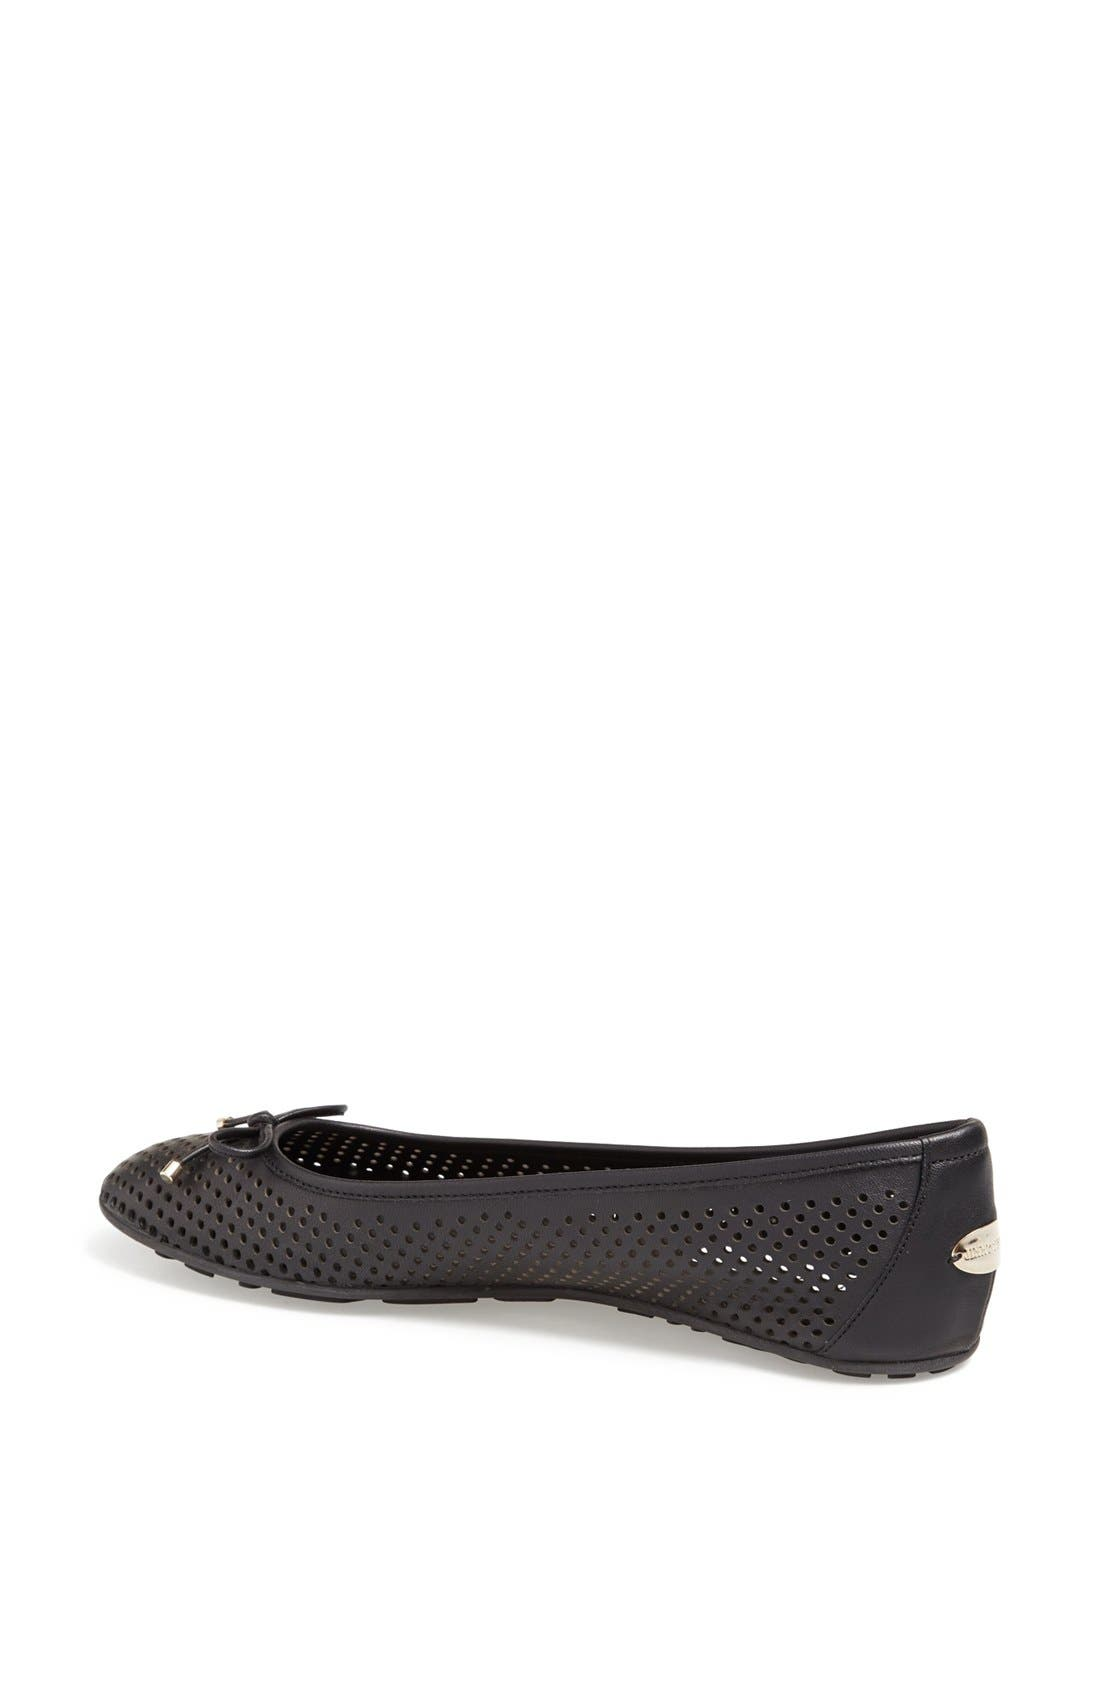 Alternate Image 2  - Jimmy Choo 'Walsh' Ballerina Flat